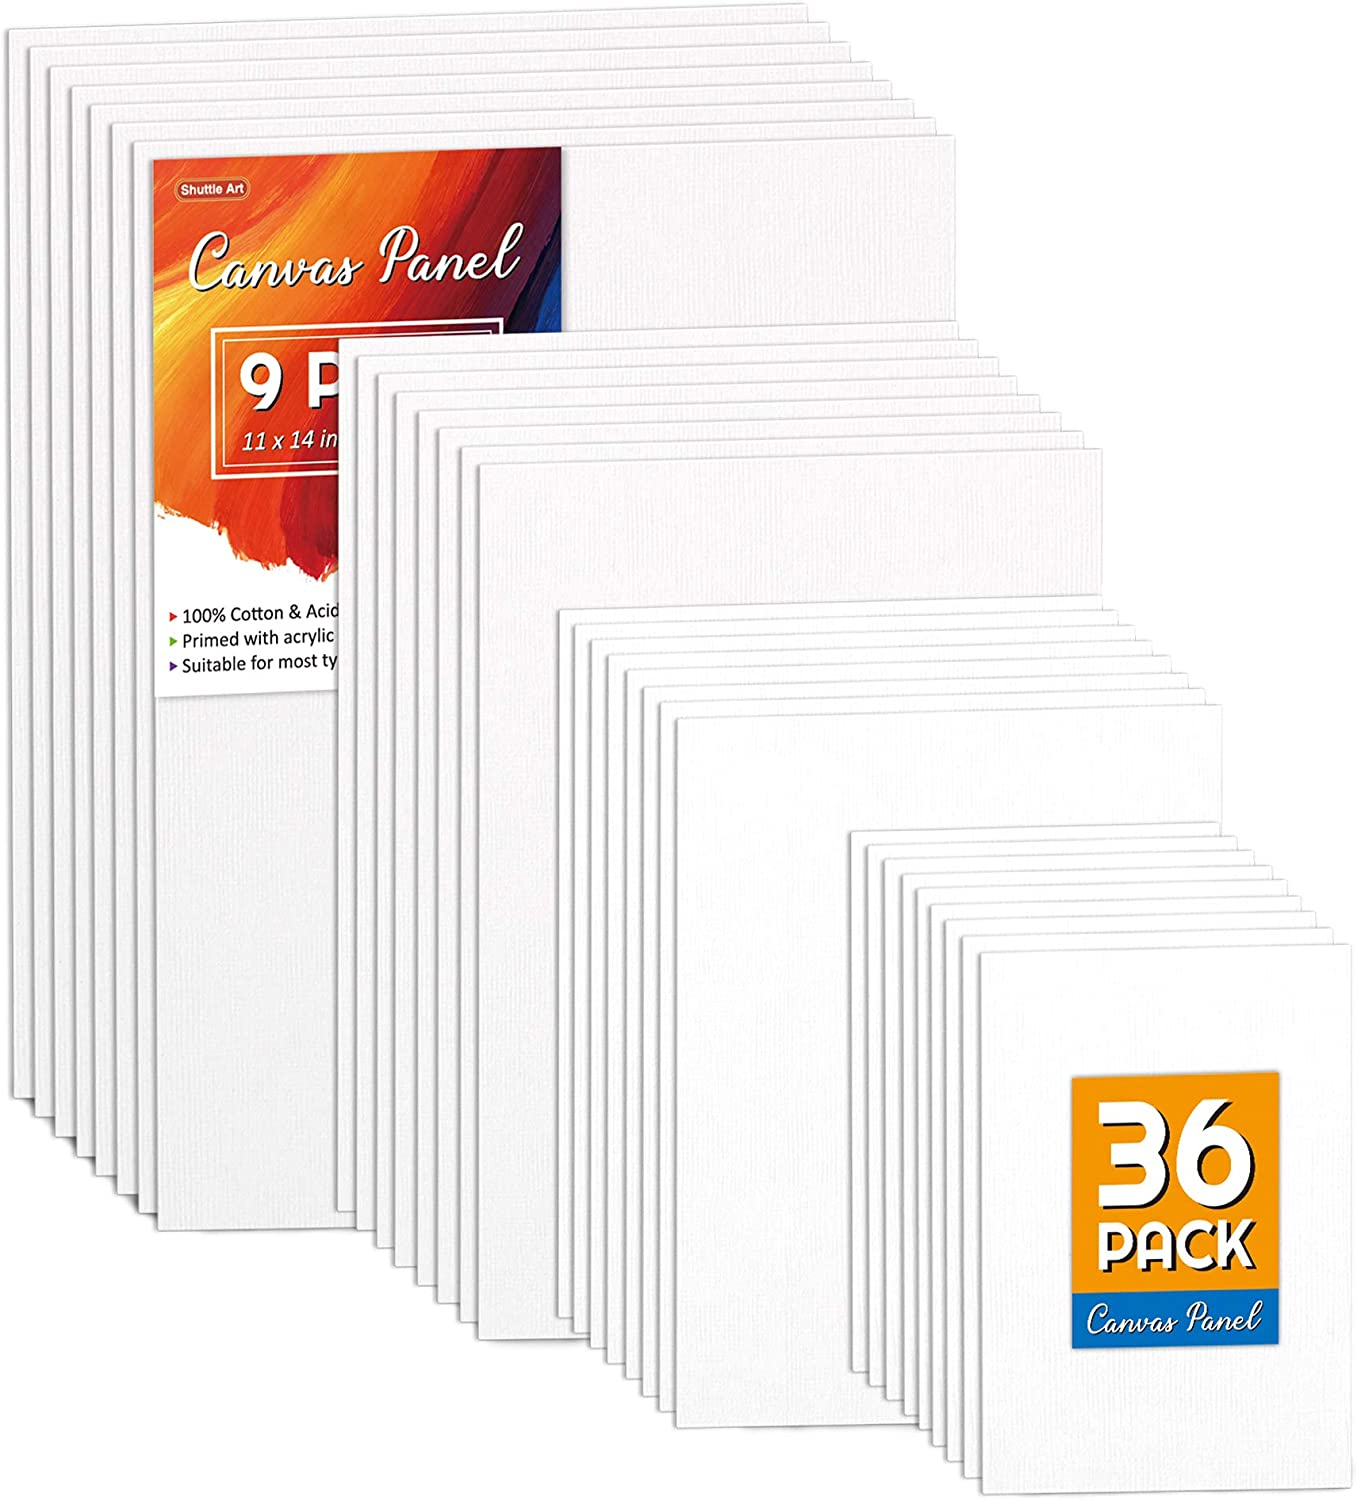 Shuttle Art Painting Canvas Panel, 36 Multi Pack, 5x7, 8x10, 9x12, 11x14 inch (9 PCS of Each), 100% Cotton Art Canvas Board Primed White, Blank Canvas for Kids Adults for Acrylic Oil Paintingainting